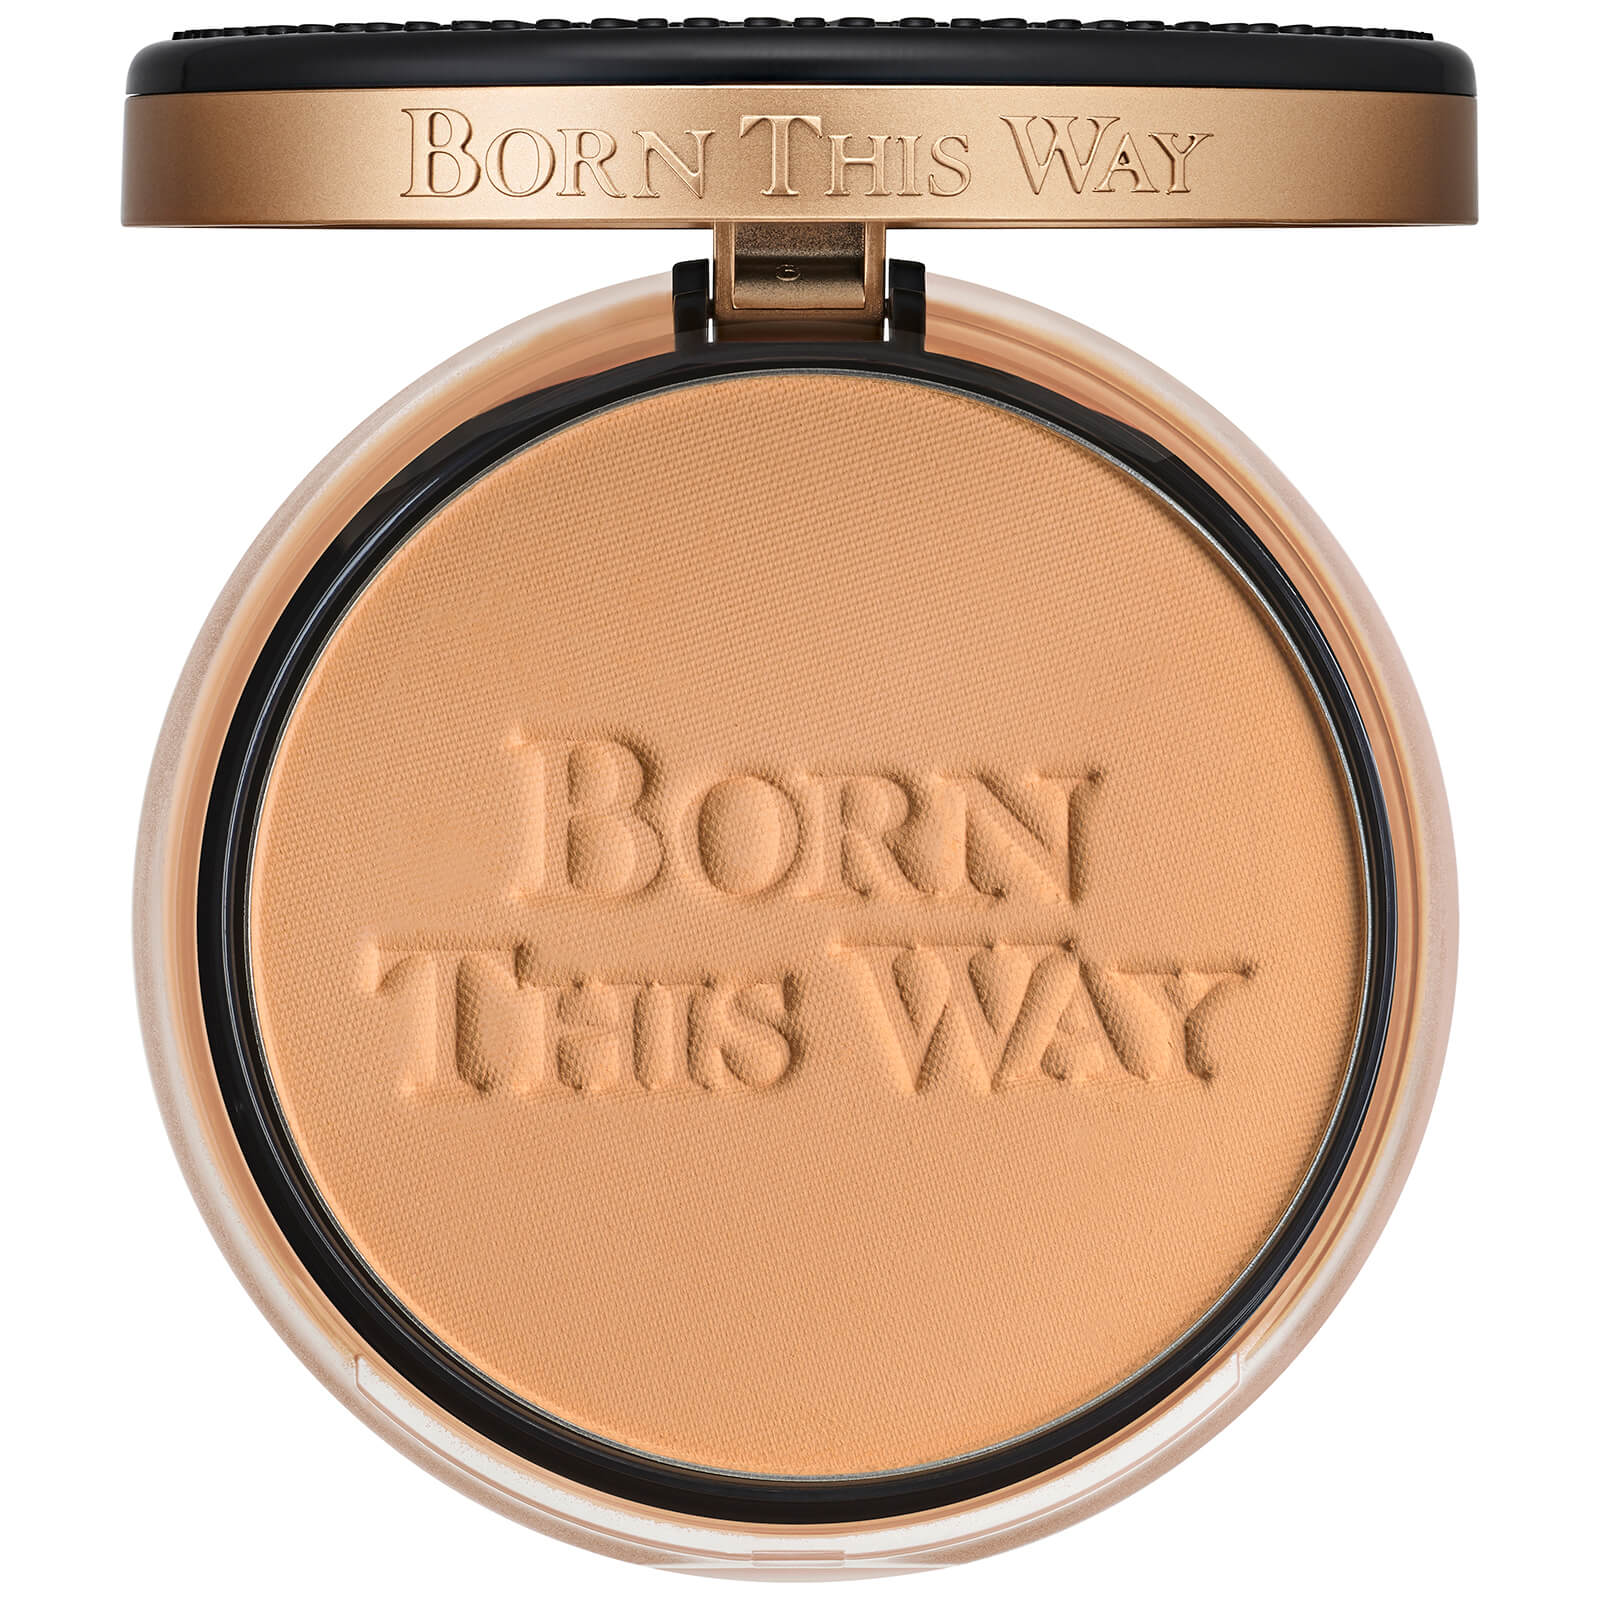 Too Faced Born This Way Multi-Use Complexion Powder (Various Shades) - Taffy